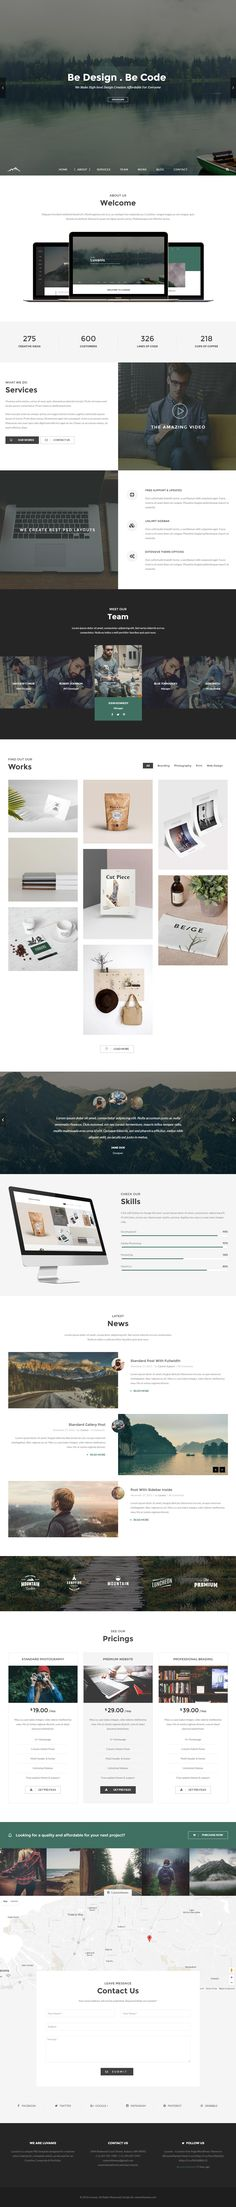 Luvanis is Premium Responsive Retina Parallax #WordPress Theme. Bootstrap 3. If you like this #Multipurpose Theme visit our handpicked list of best #OnePage WordPress Themes at: http://www.responsivemiracle.com/best-responsive-one-page-wordpress-themes/